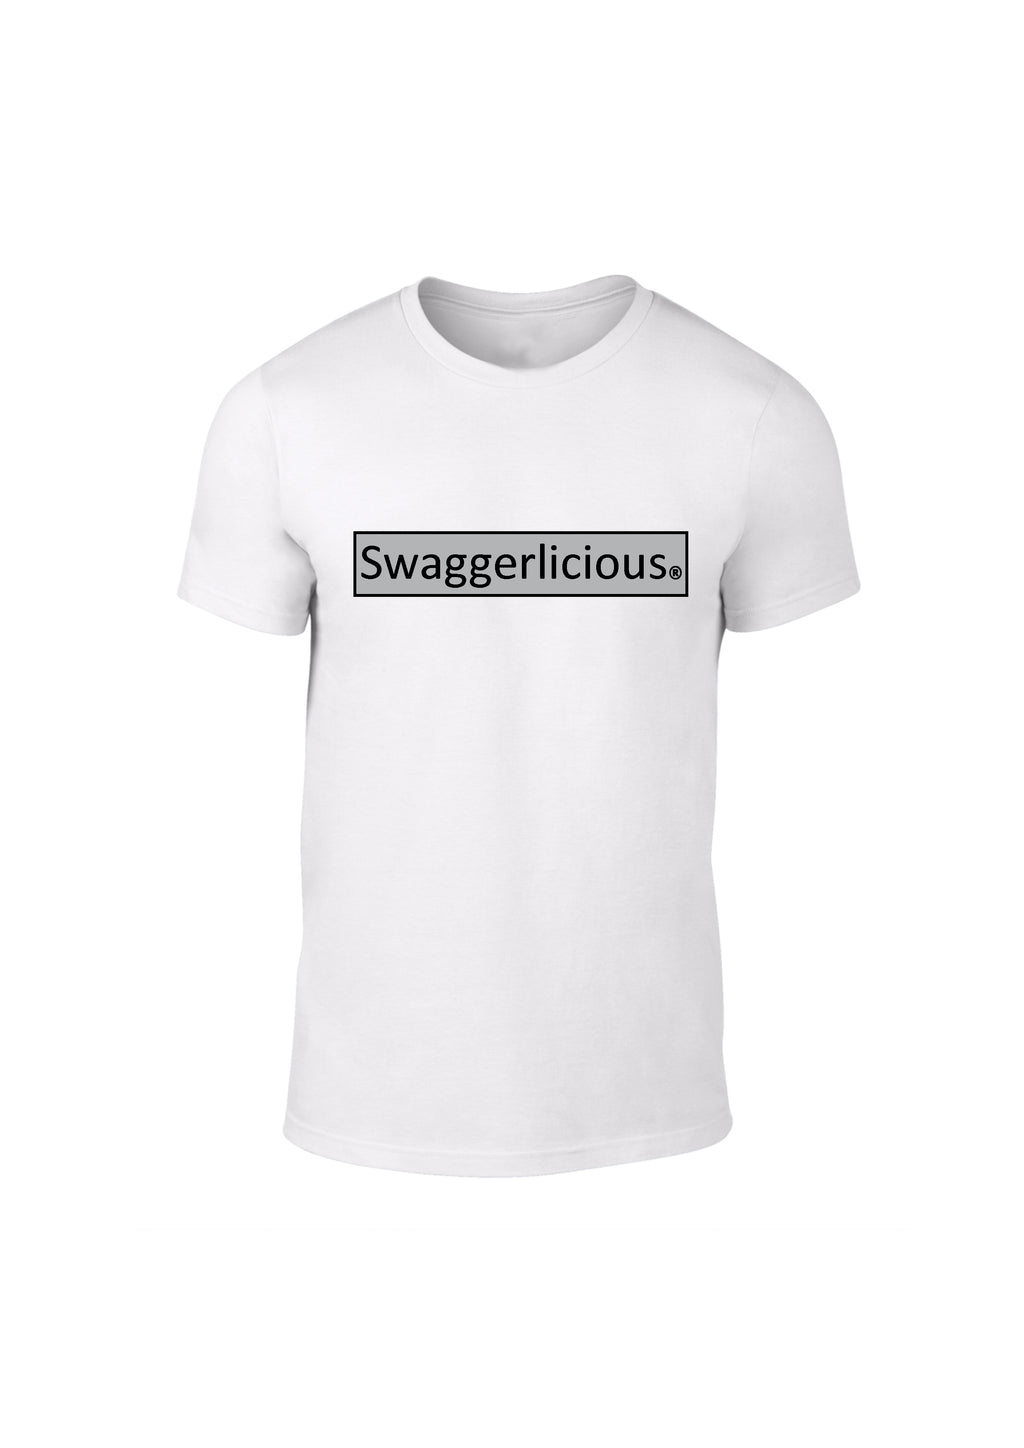 SWAGGERLICIOUS CRISP TEE - WHITE - swaggerlicious-clothing.com